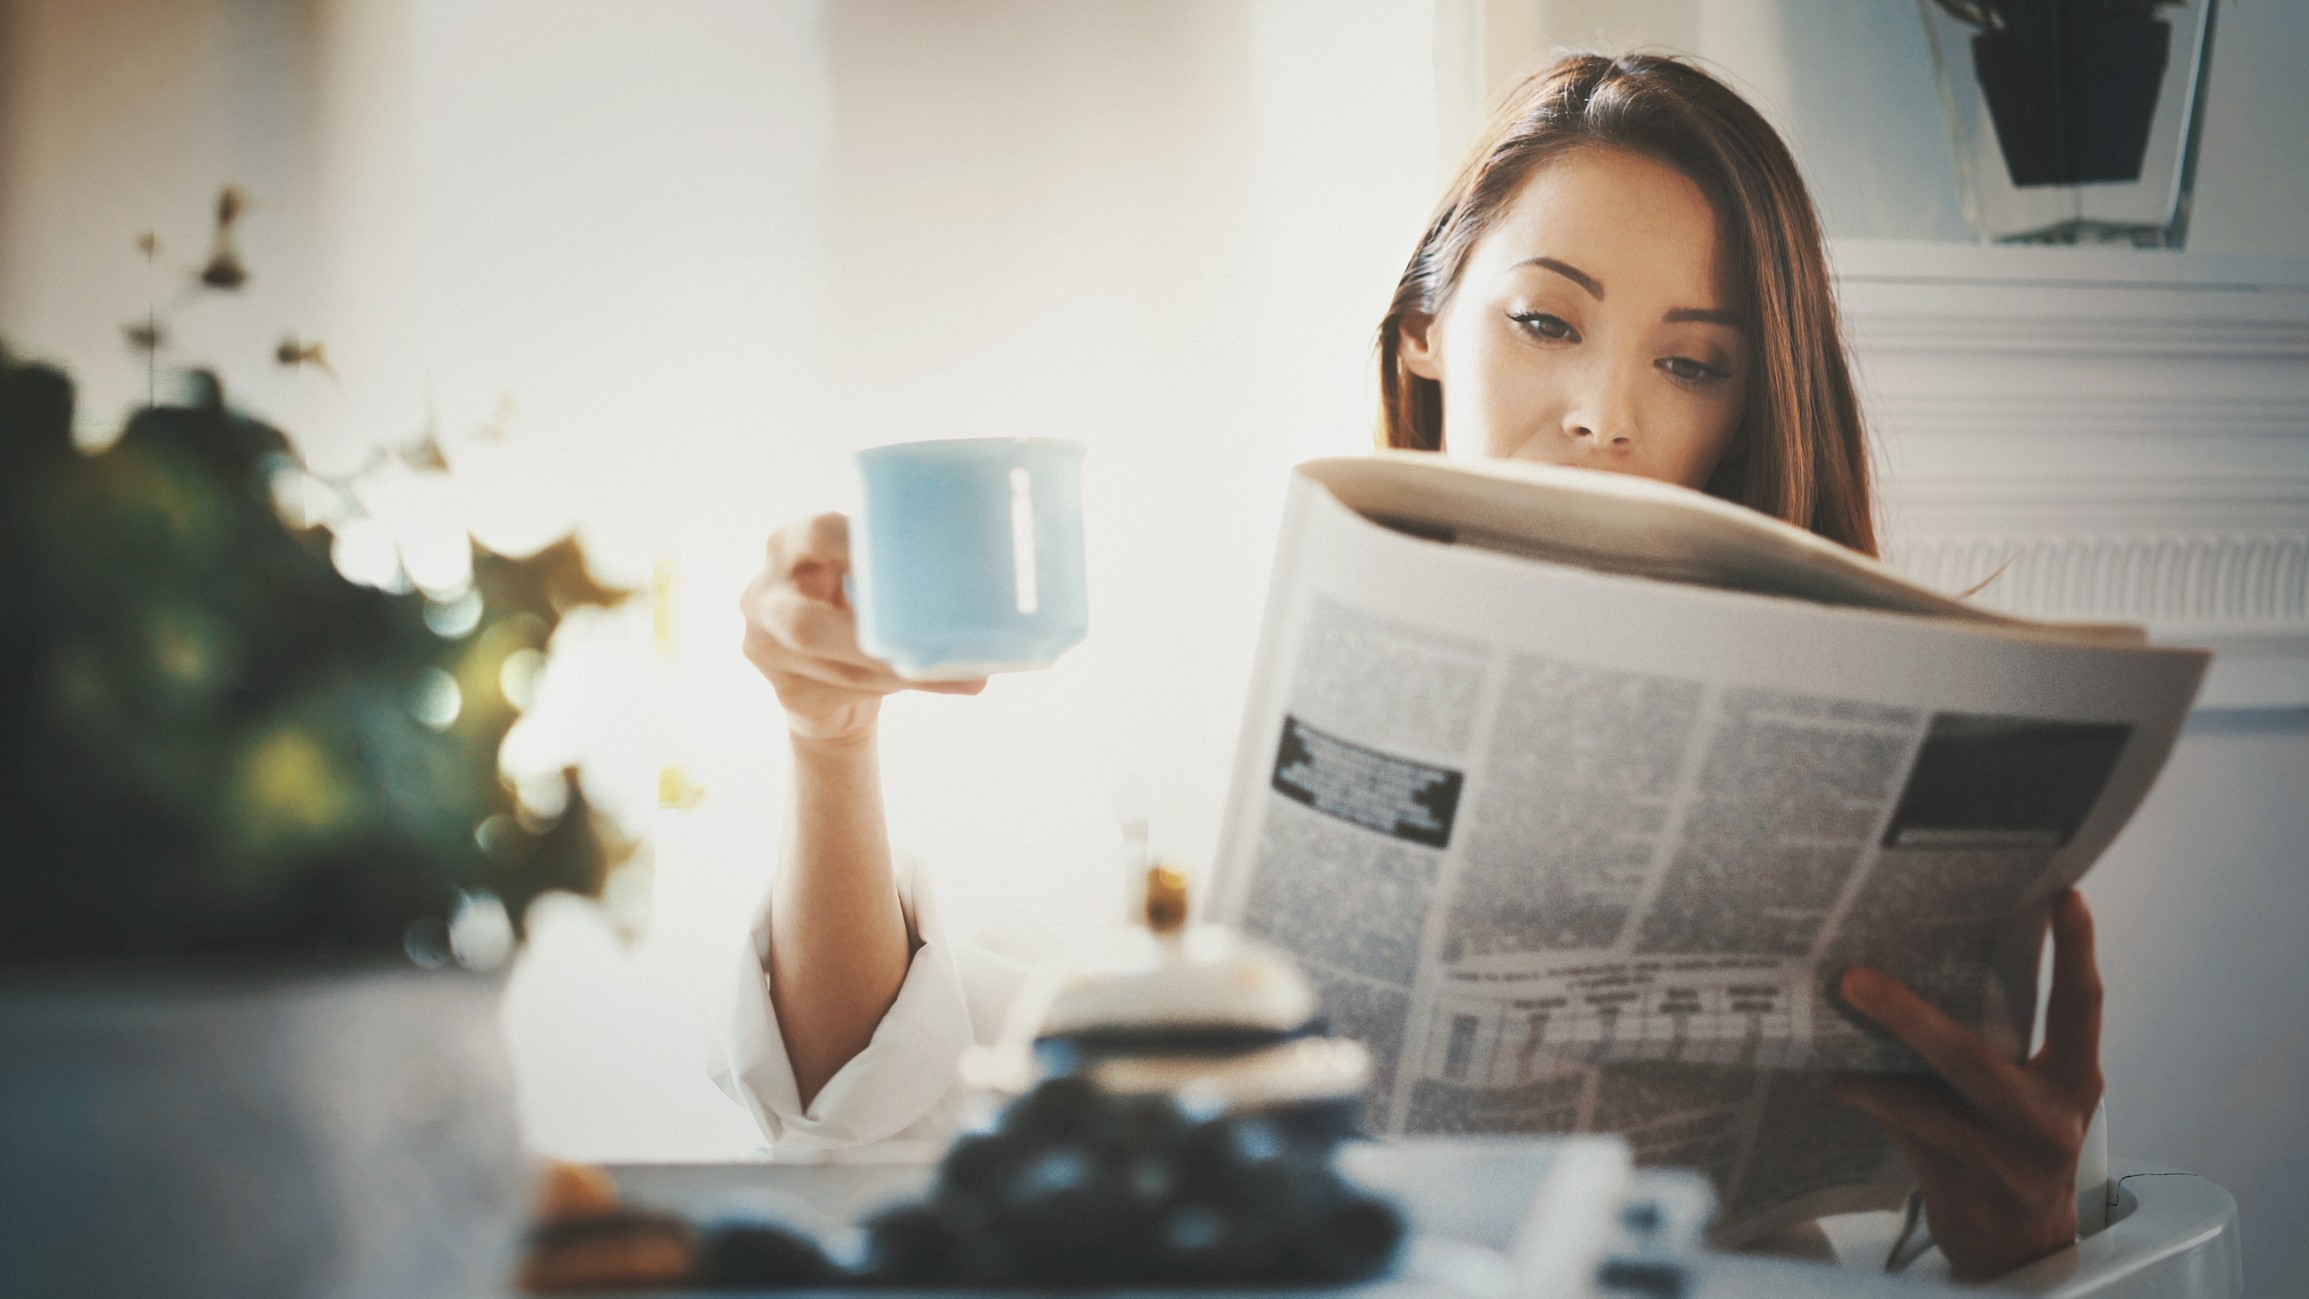 Morning routine with coffee and newspaper